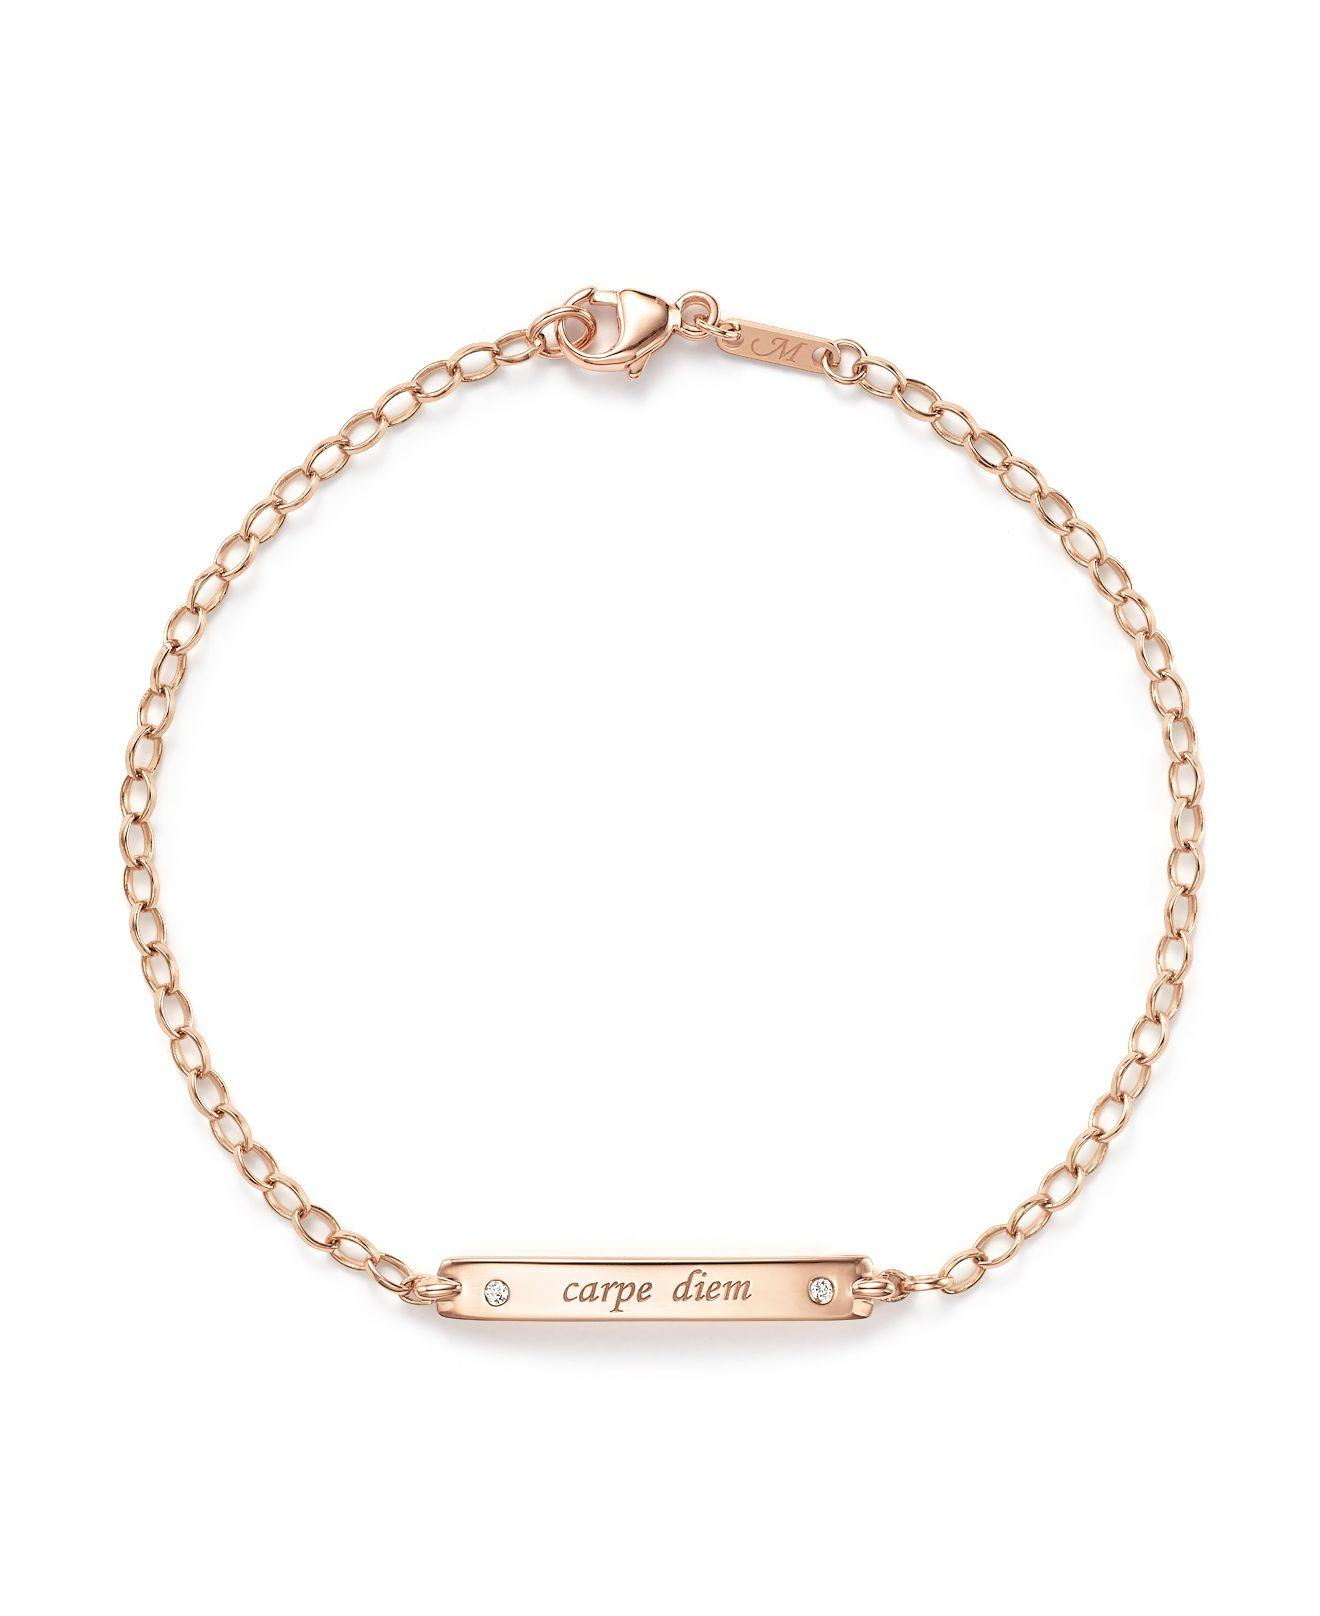 Monica Rich Kosann Carpe Diem Charm Bracelet in 18K Yellow Gold QUPhSqr